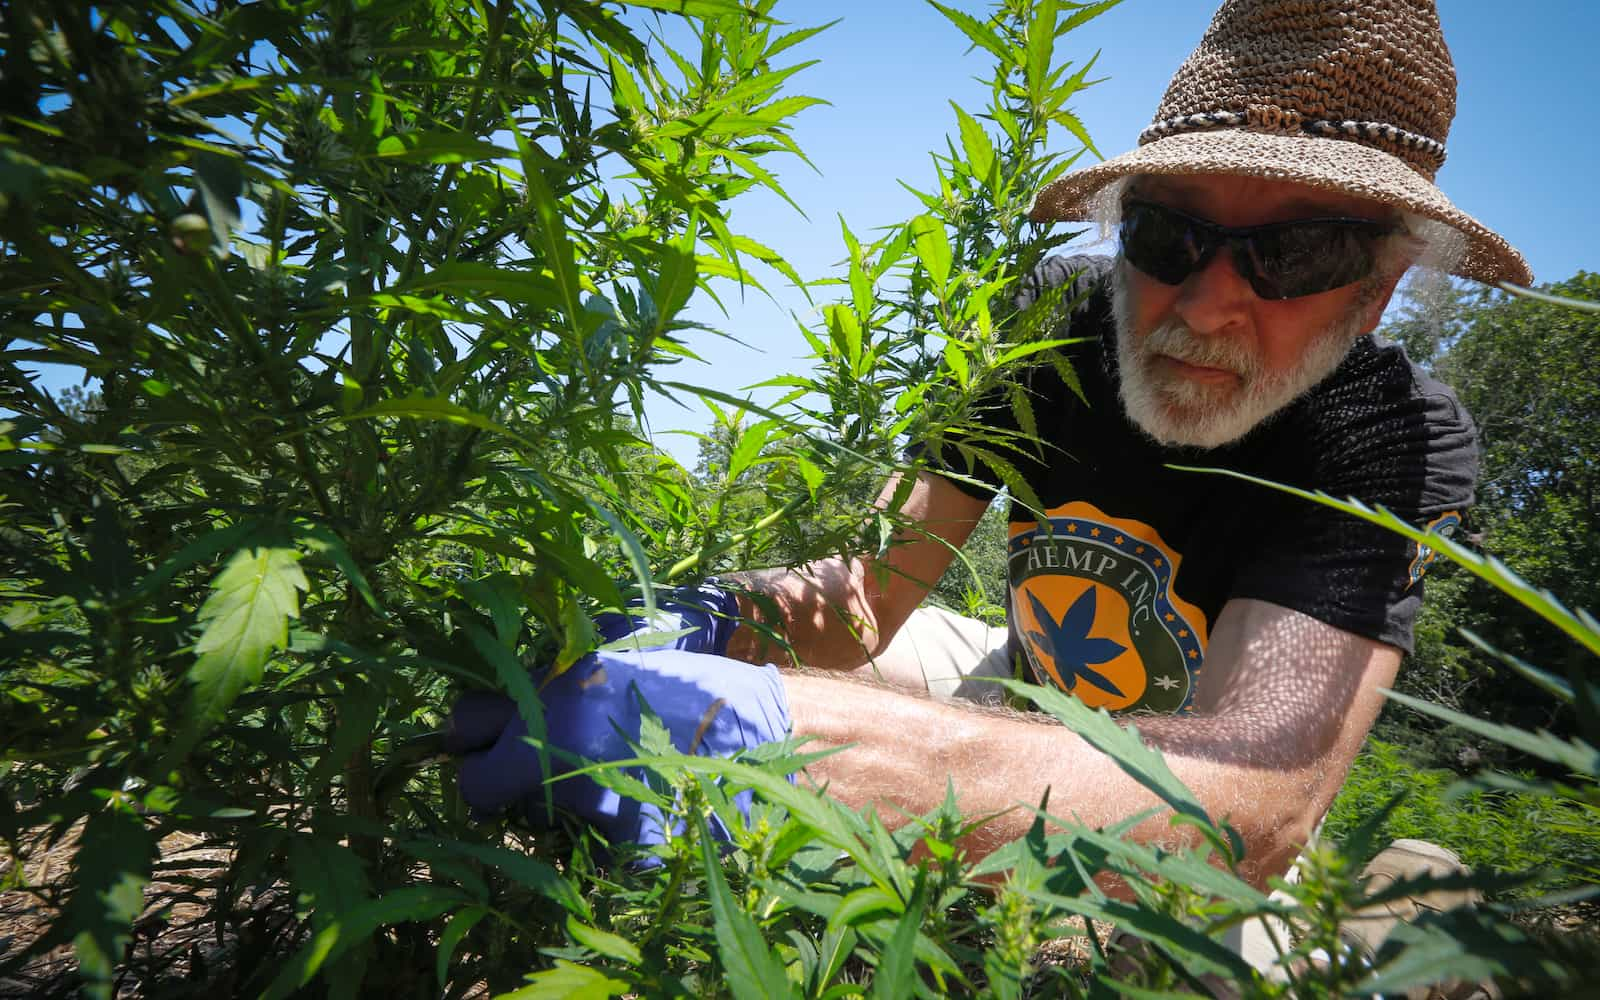 North Carolina Is Harvesting Its First Legal Hemp Crop in Decades